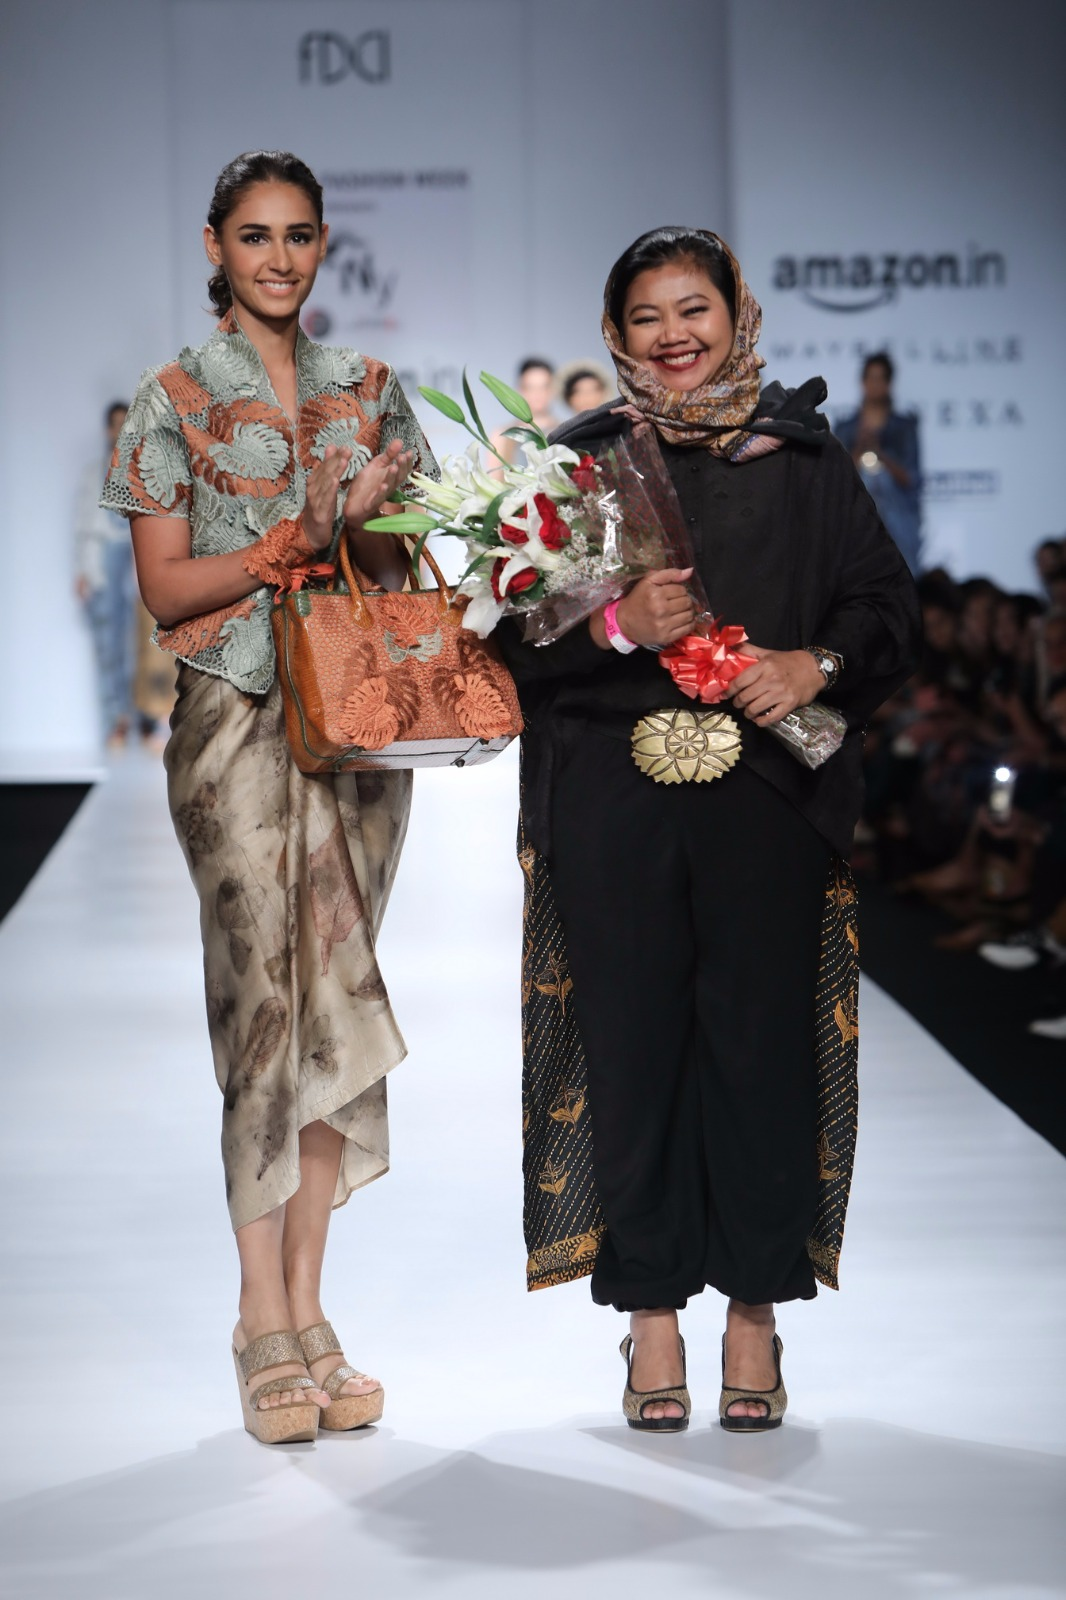 http://www.talksassy.com/wp-content/uploads/2017/03/Amazon-India-Fashion-Week-Autumn-Winter-2017-8.jpg